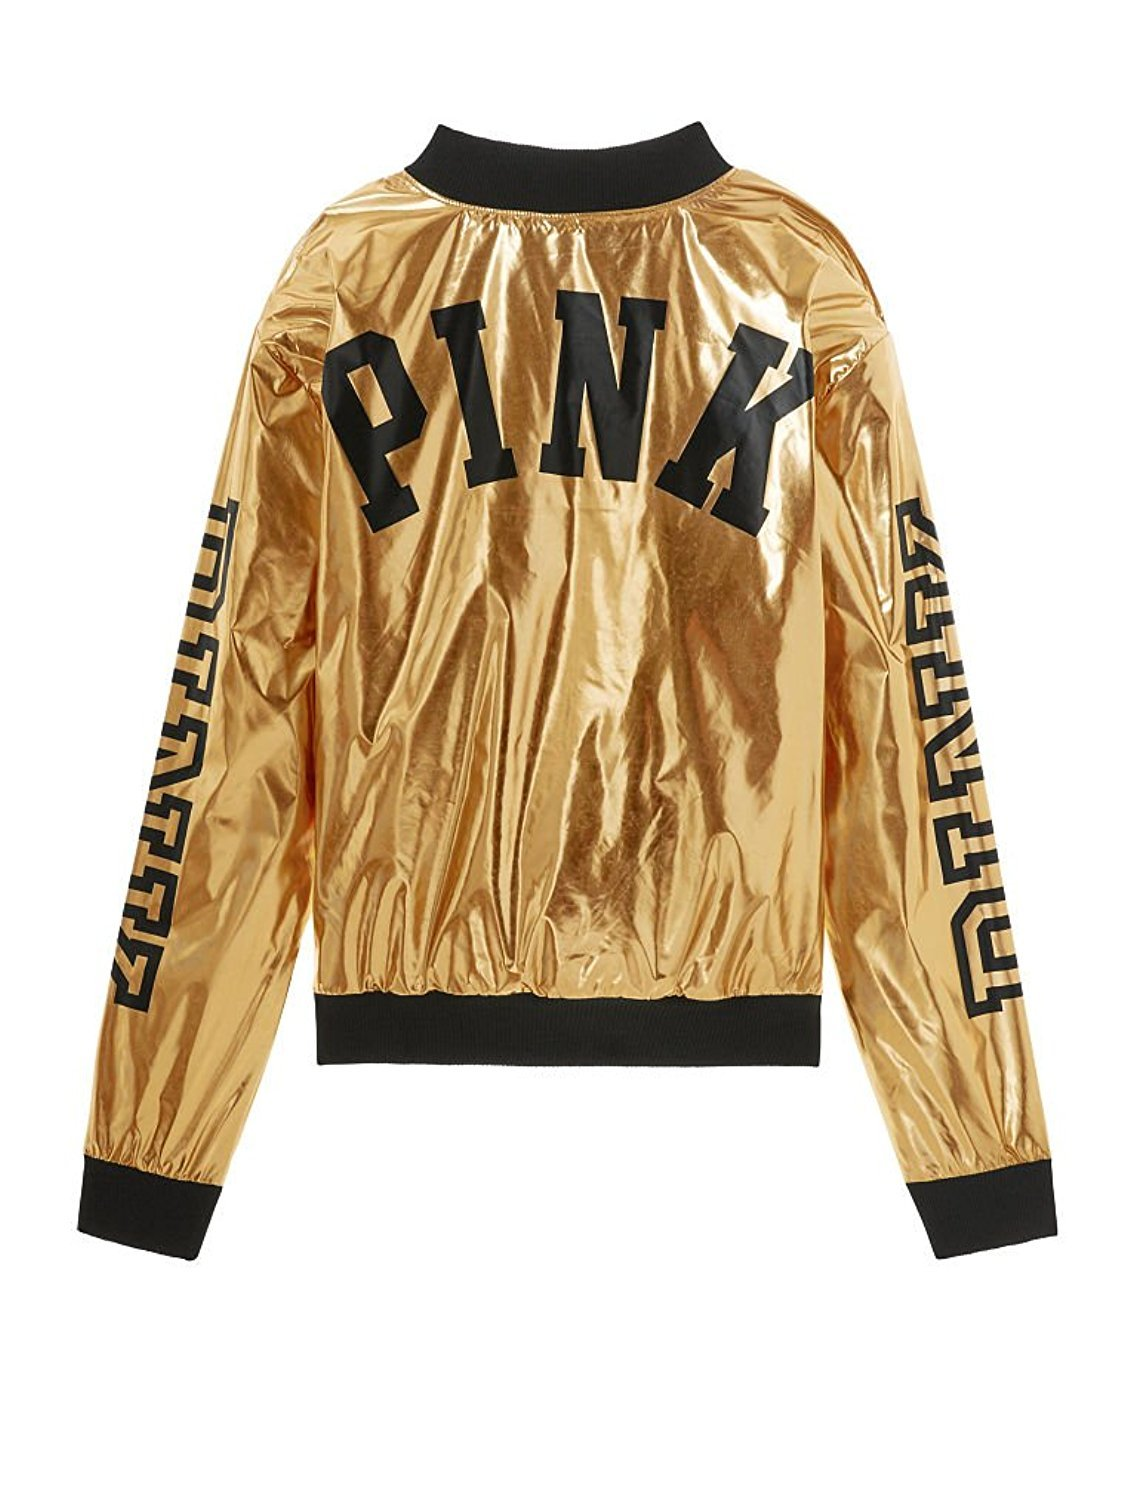 Victoria's Secret, Pink New! Metallic Bomber Jacket Metallic (X-Small) by Victoria's Secret,